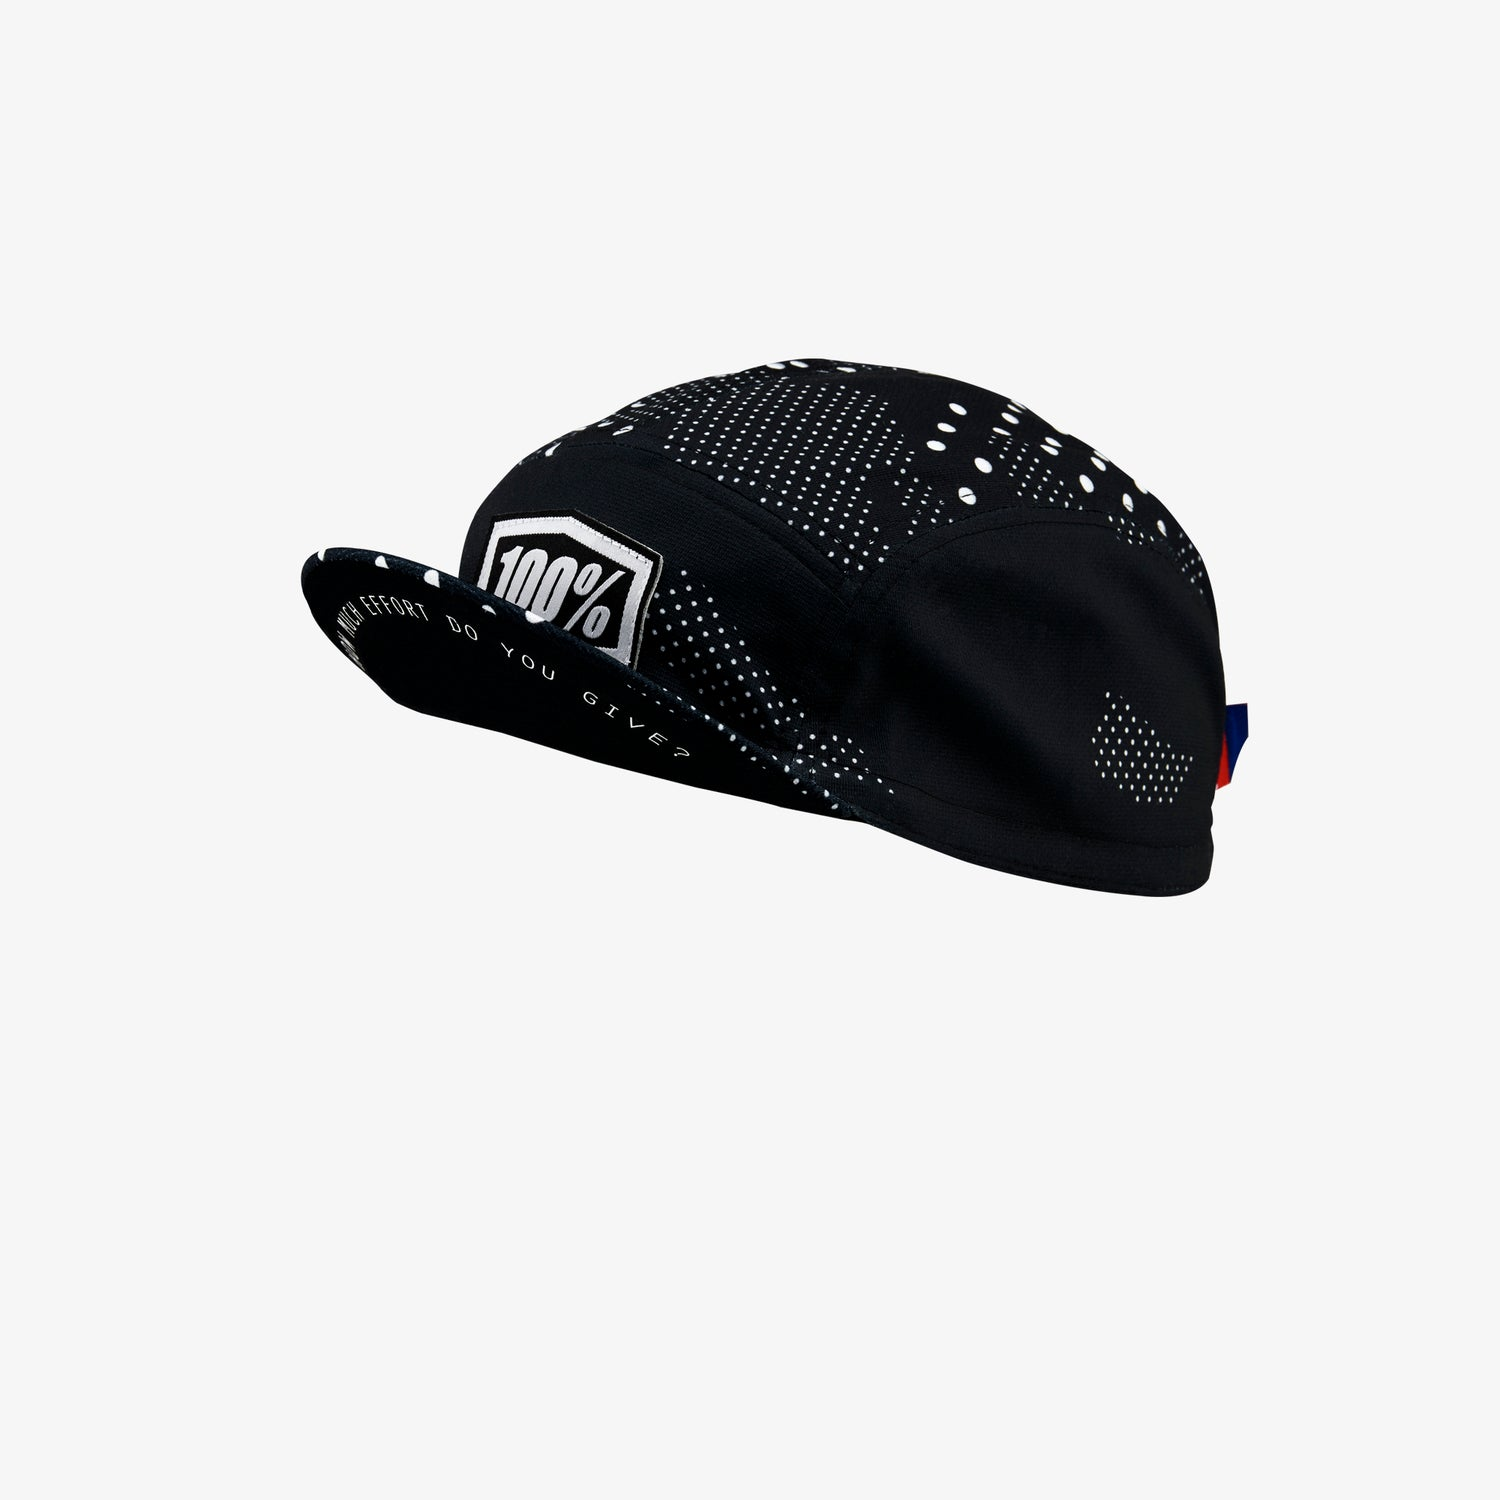 EXCEEDA Road Cap - Black